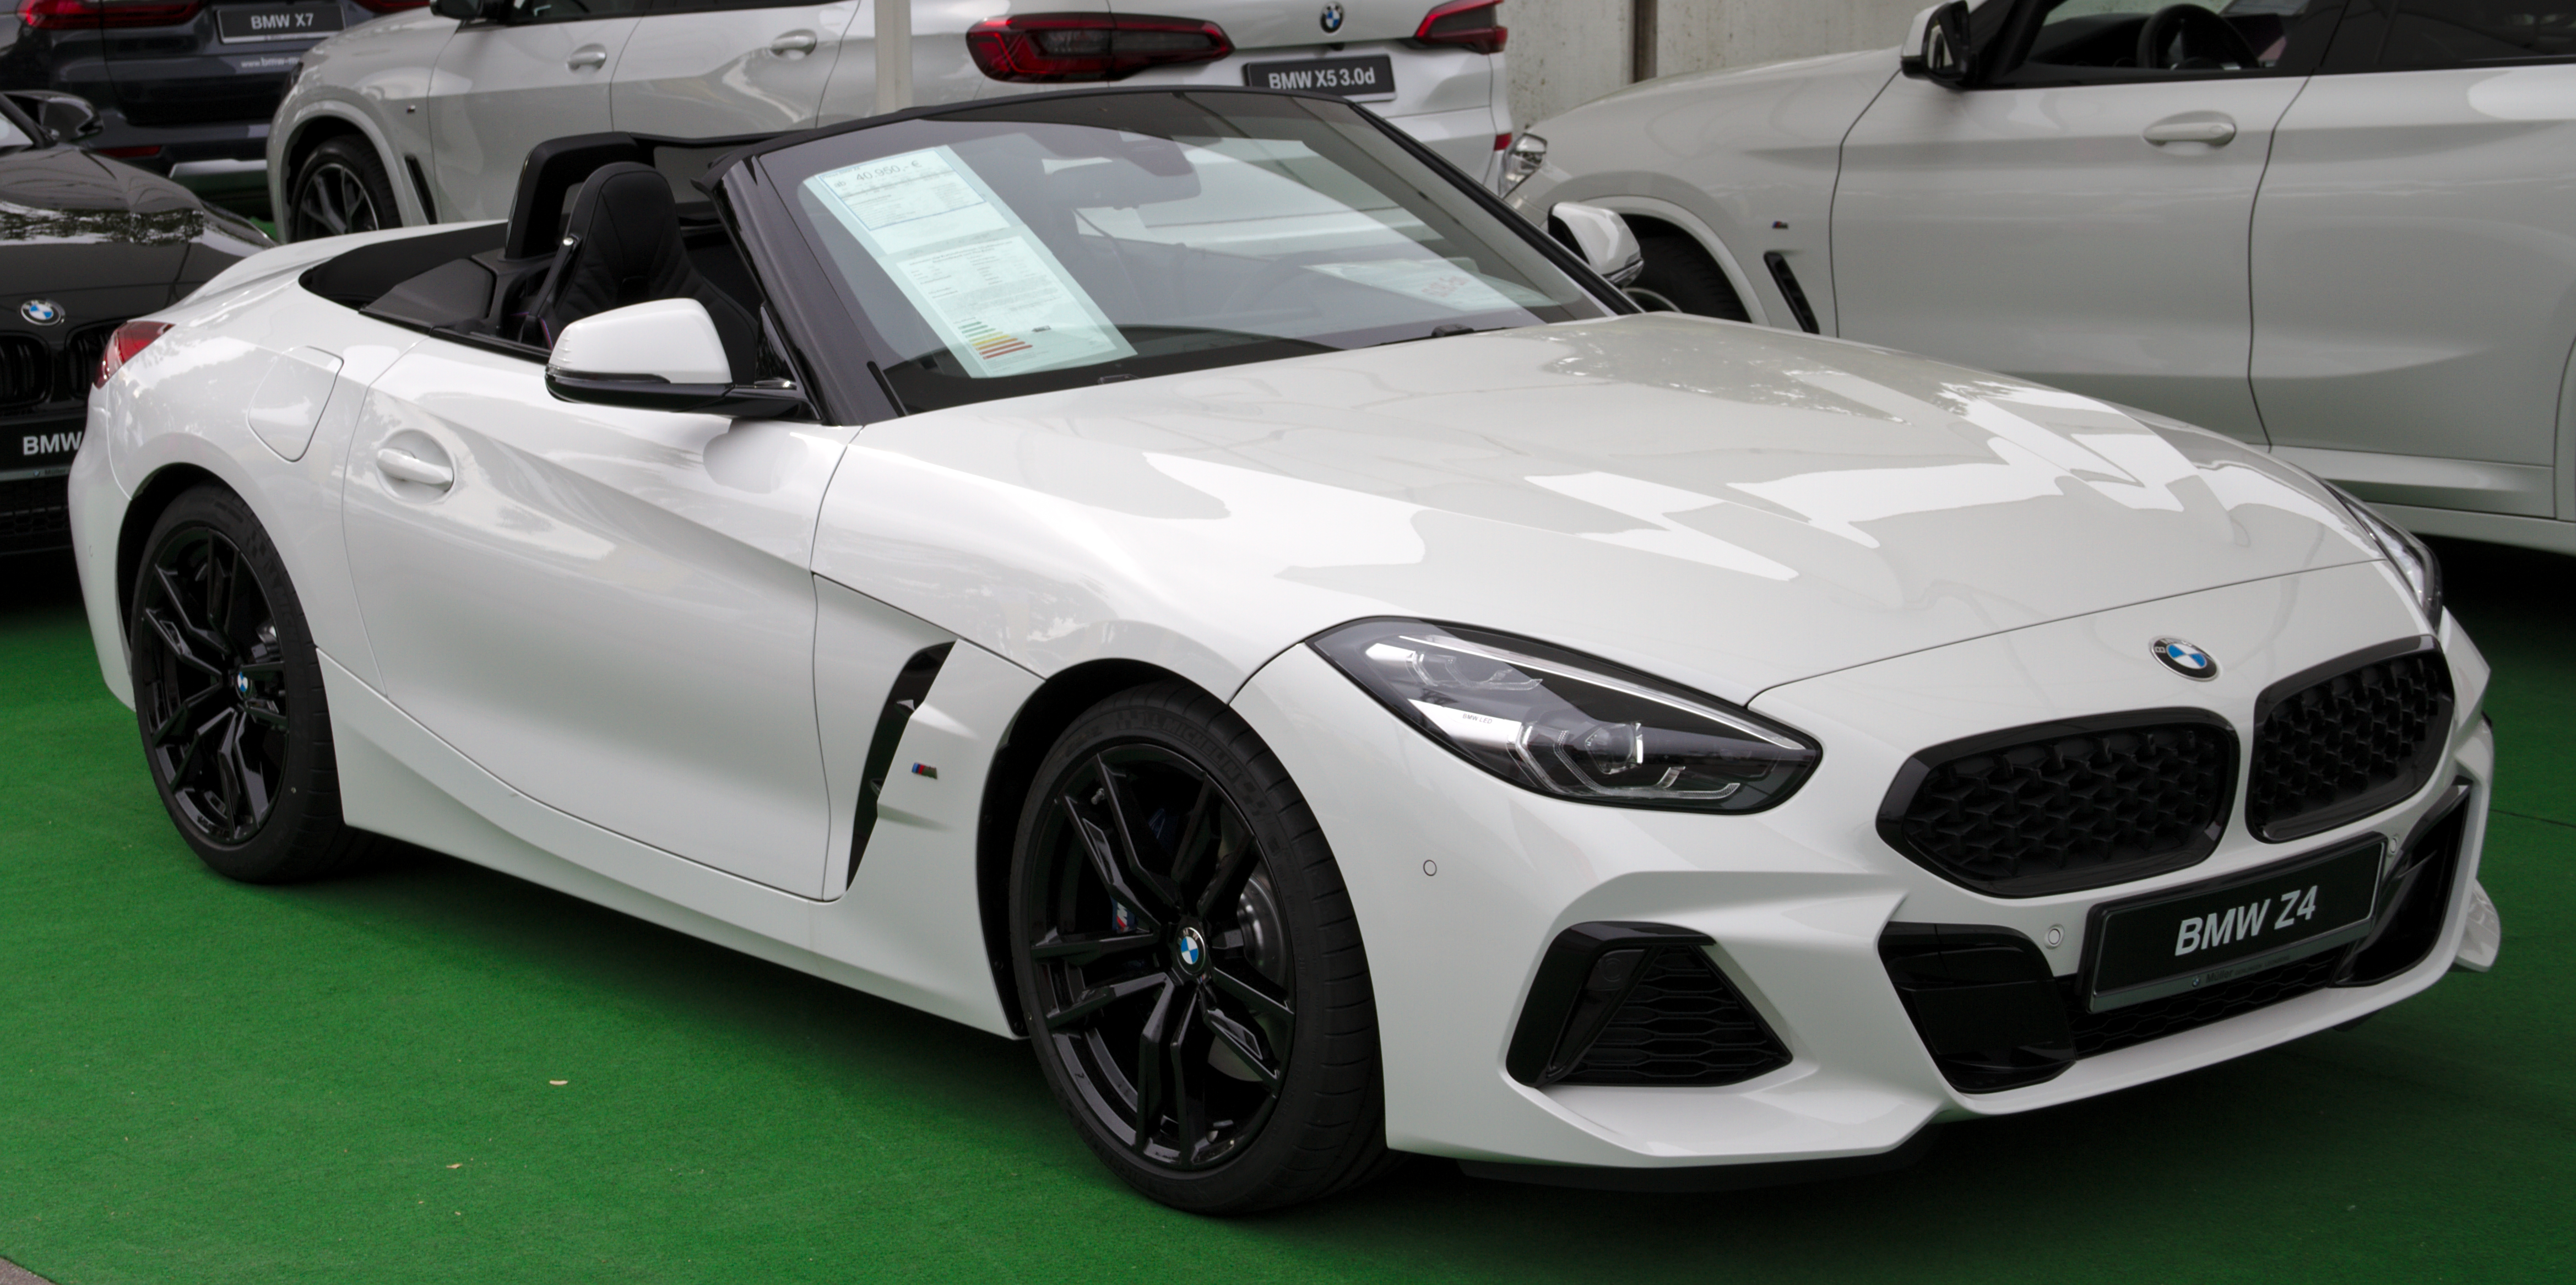 2020 BMW Z4 Roadster Ratings